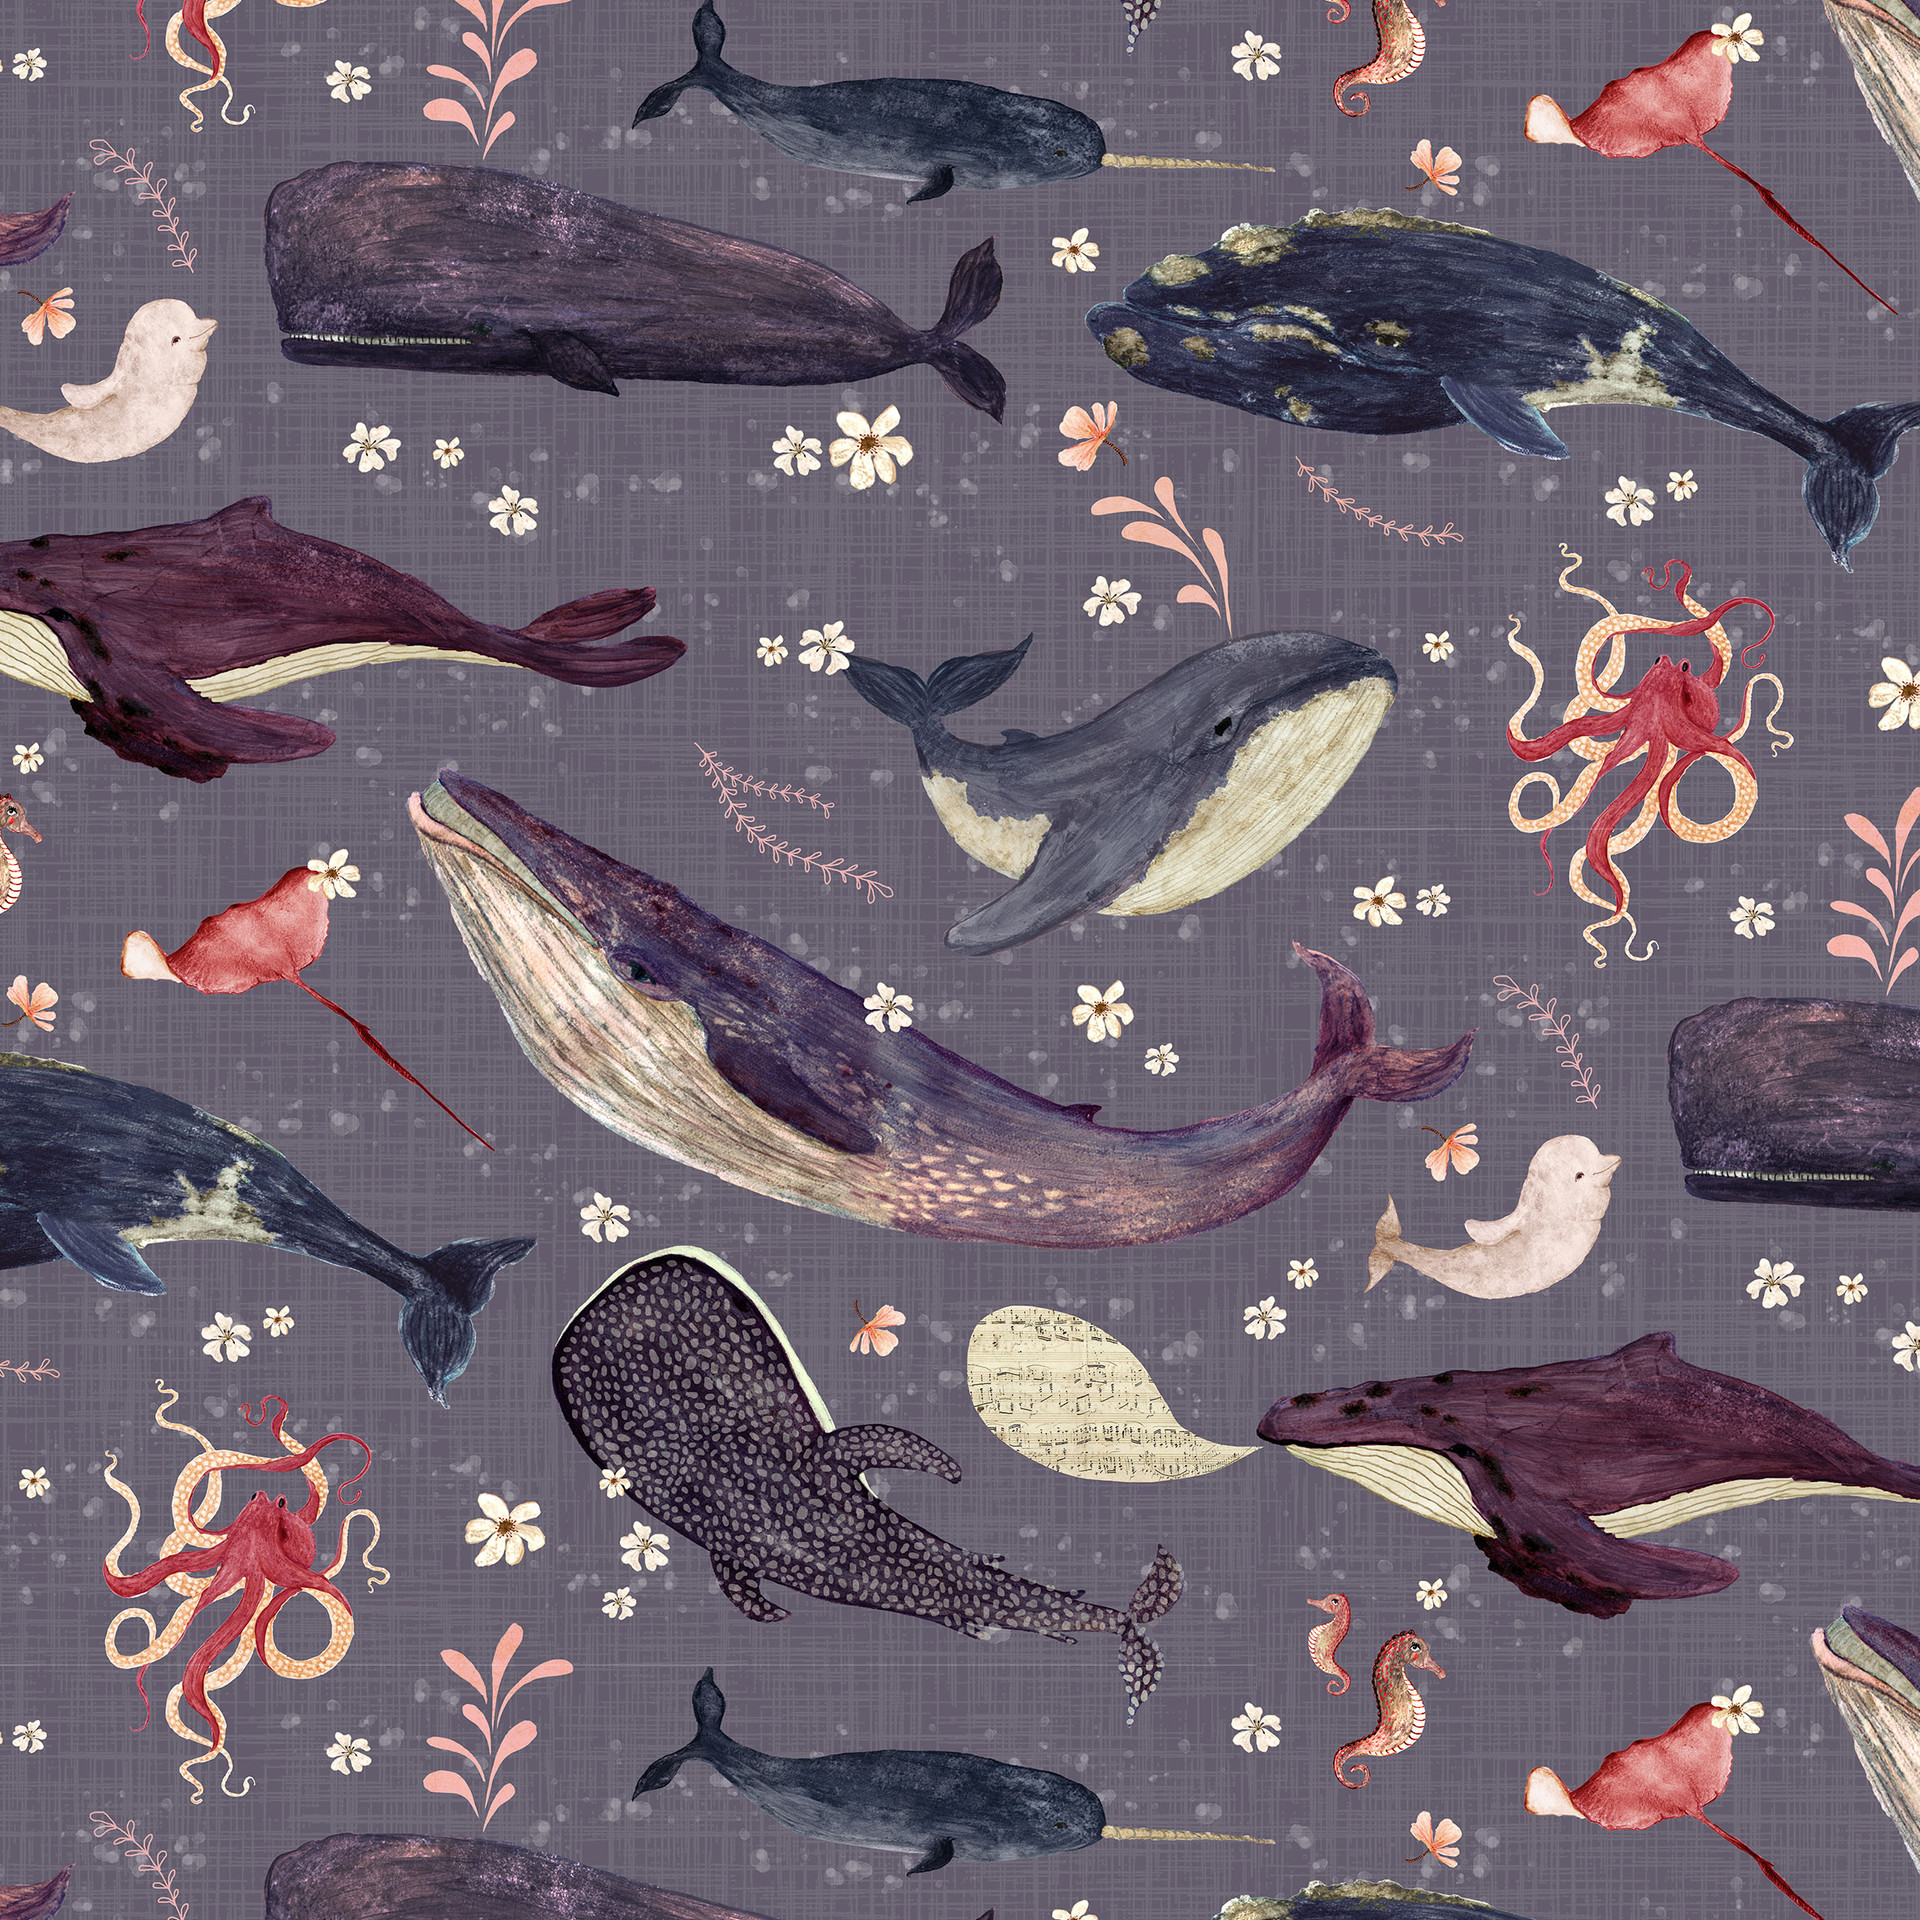 Whale's song lavender